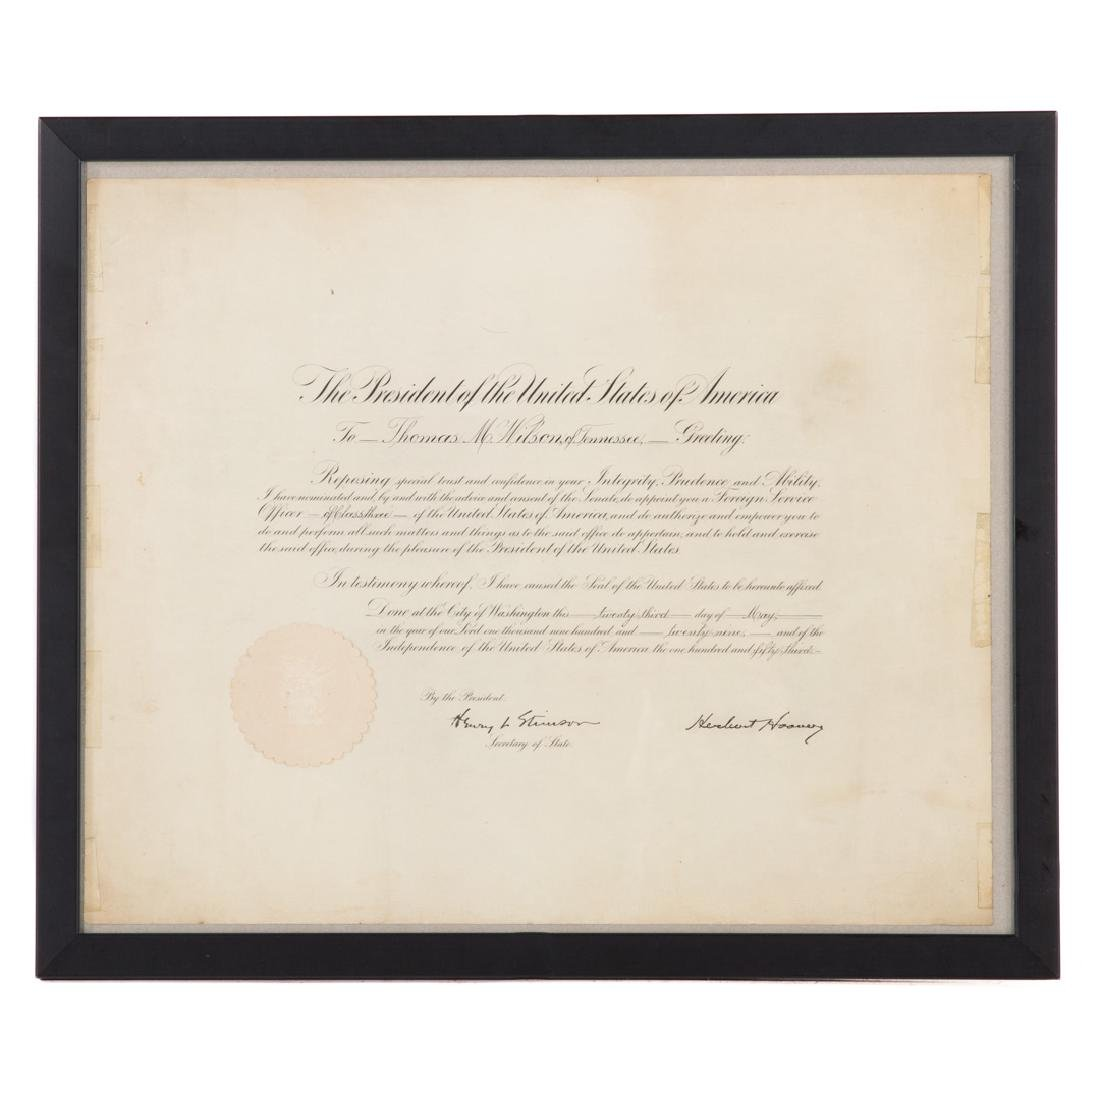 Hoover/Stimson signed document